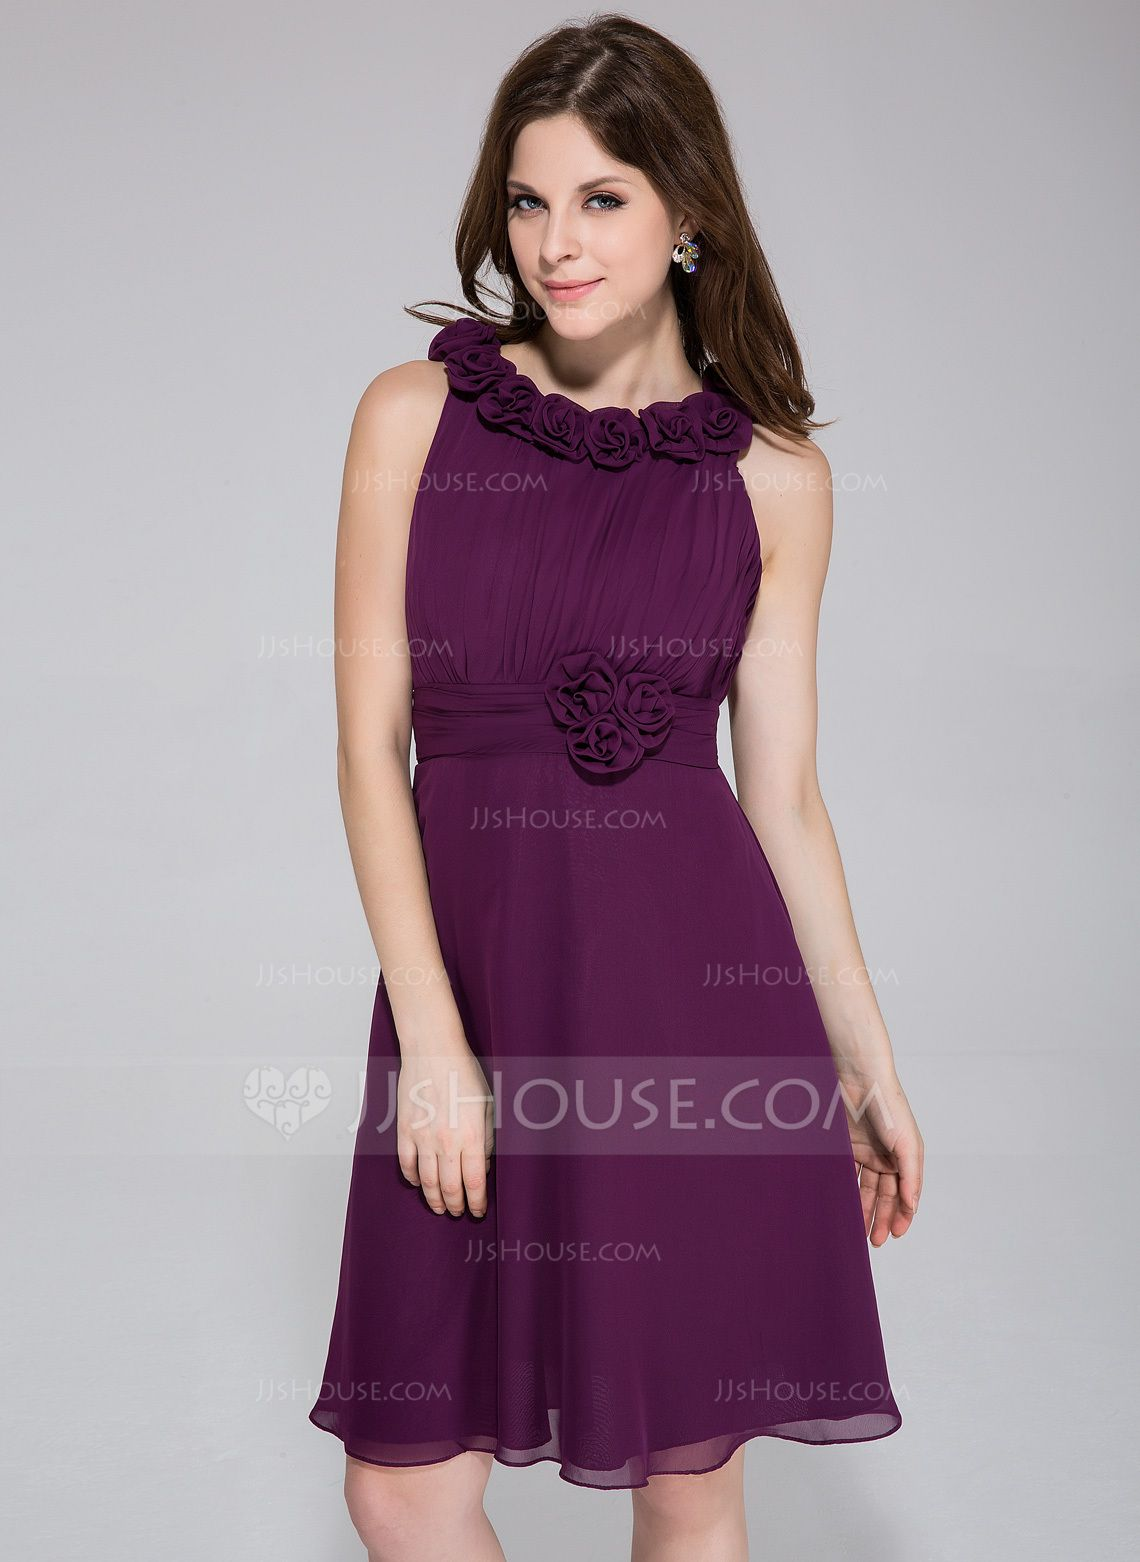 Us 105 00 A Line Scoop Neck Knee Length Chiffon Bridesmaid Dress With Ruffle Flower S Jj S House Cheap Wedding Guest Dresses Bridesmaid Dresses Chiffon Bridesmaid [ 1562 x 1140 Pixel ]